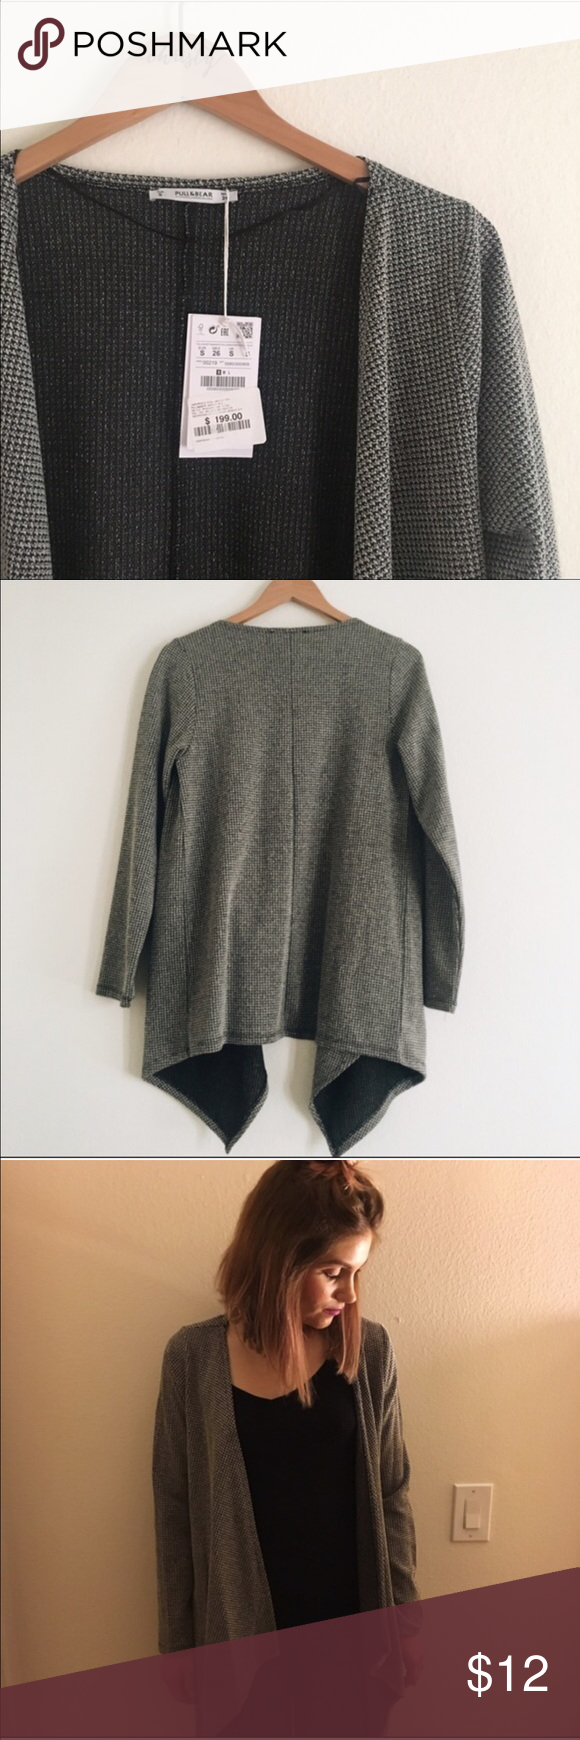 Pull Bear Cardigan Brand New From Mexico 39 Cotton 2 Viscose Lightweight No Closure Grey Wrap Pull Bear S Clothes Design Shrug Sweater Fashion Design